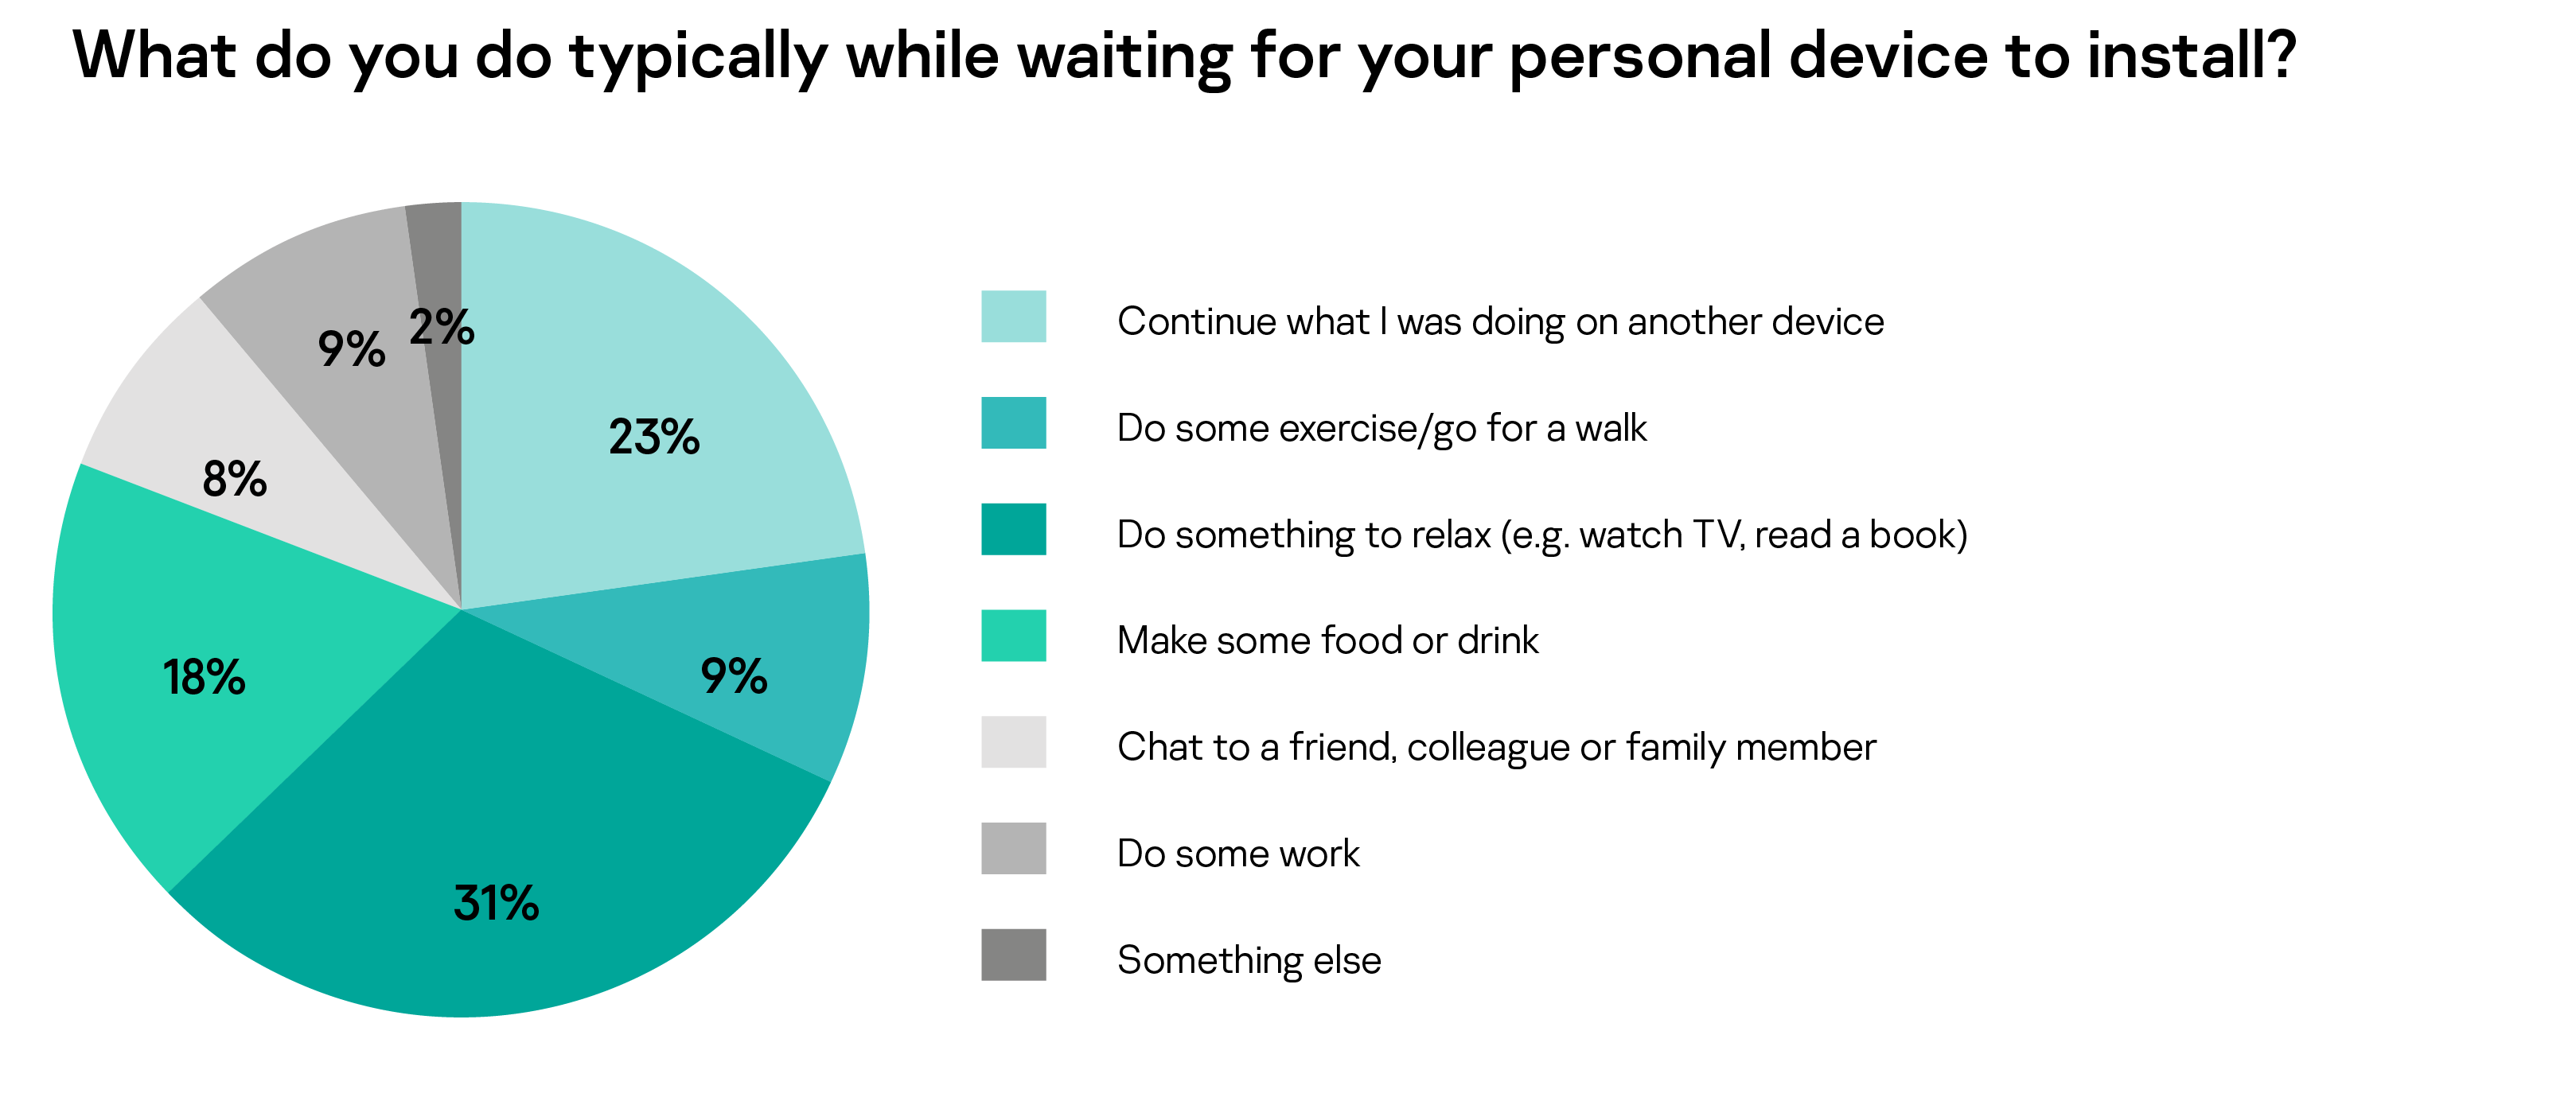 What do you do typically while waiting for your personal device to install?